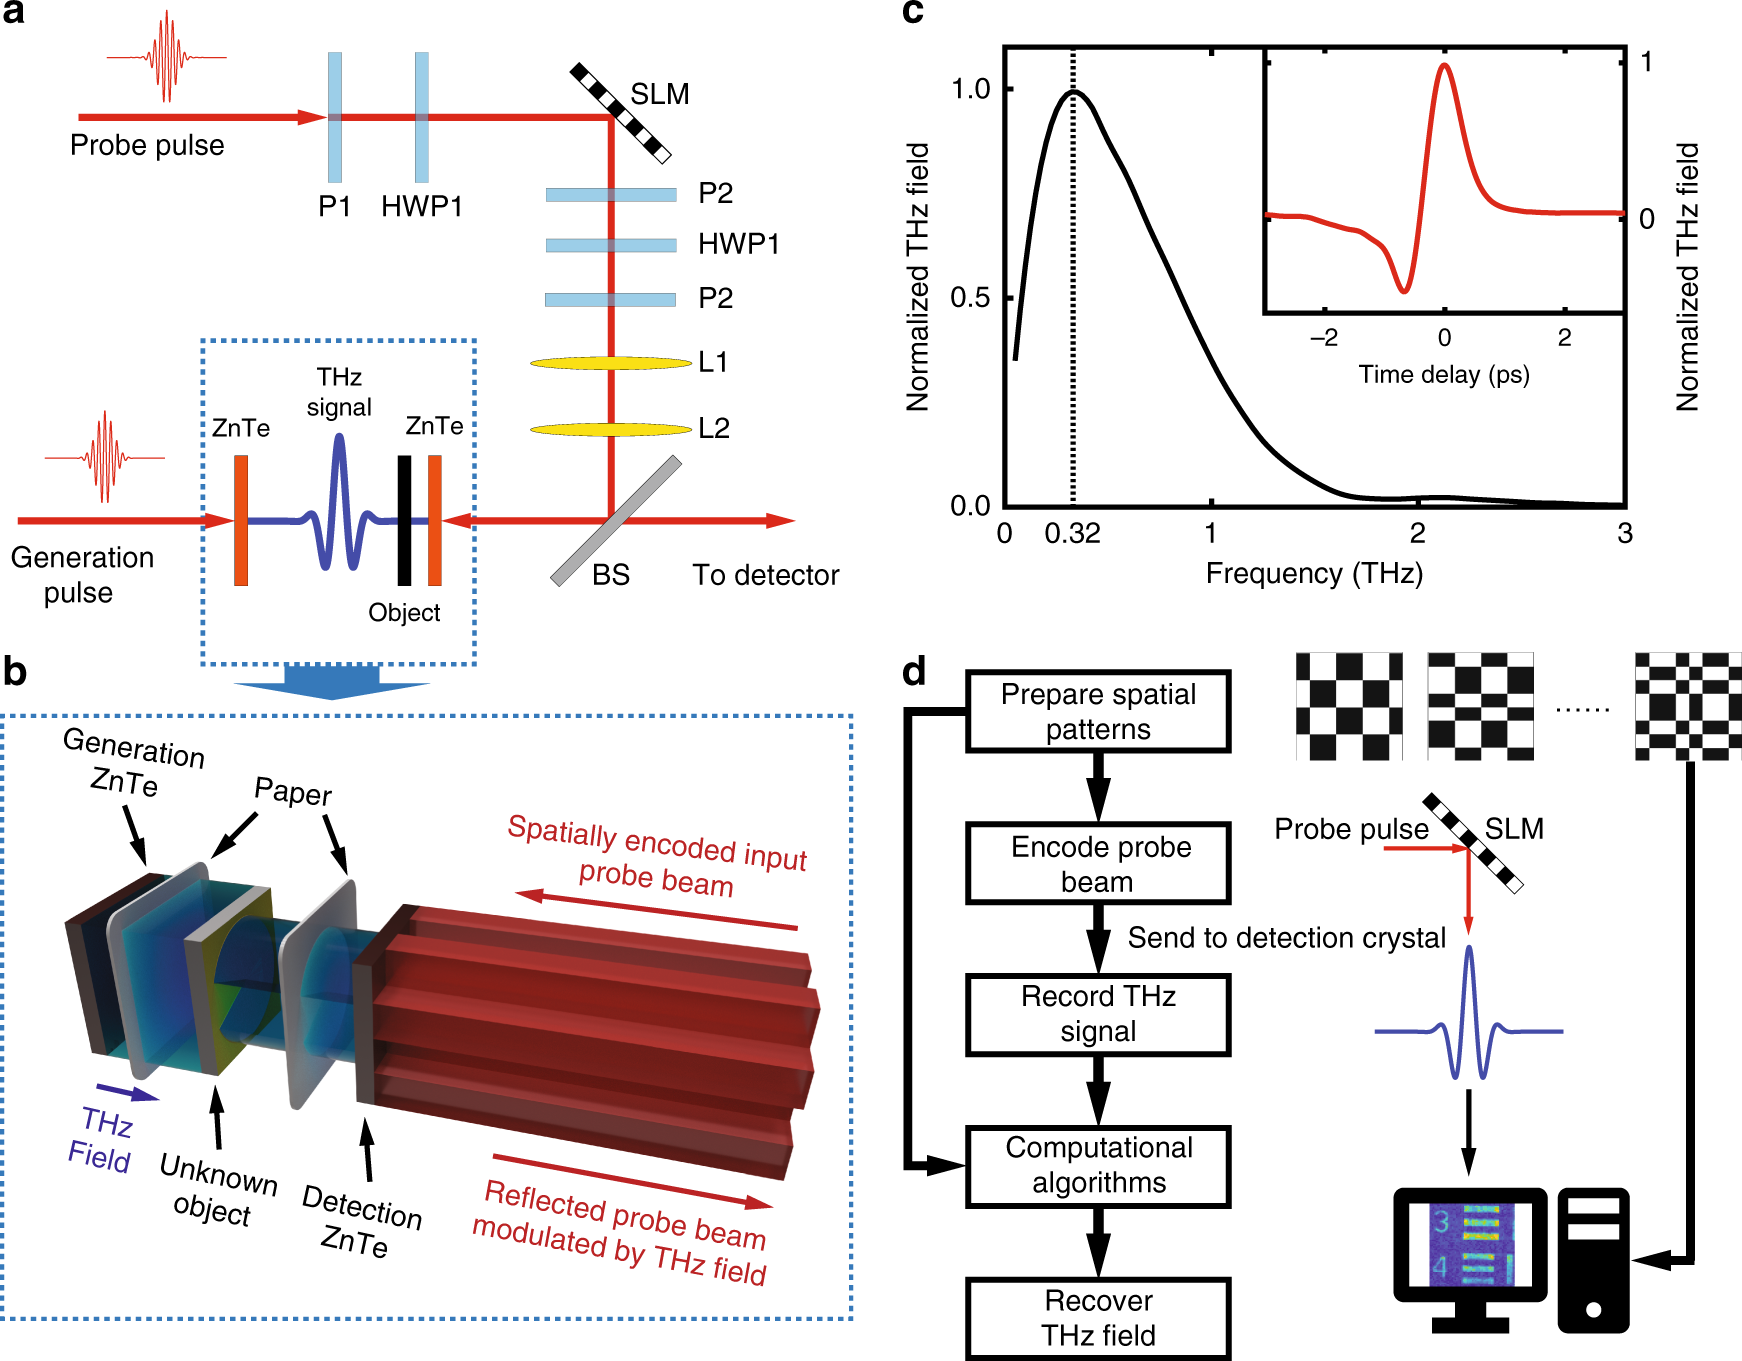 Spatial sampling of terahertz fields with sub-wavelength accuracy